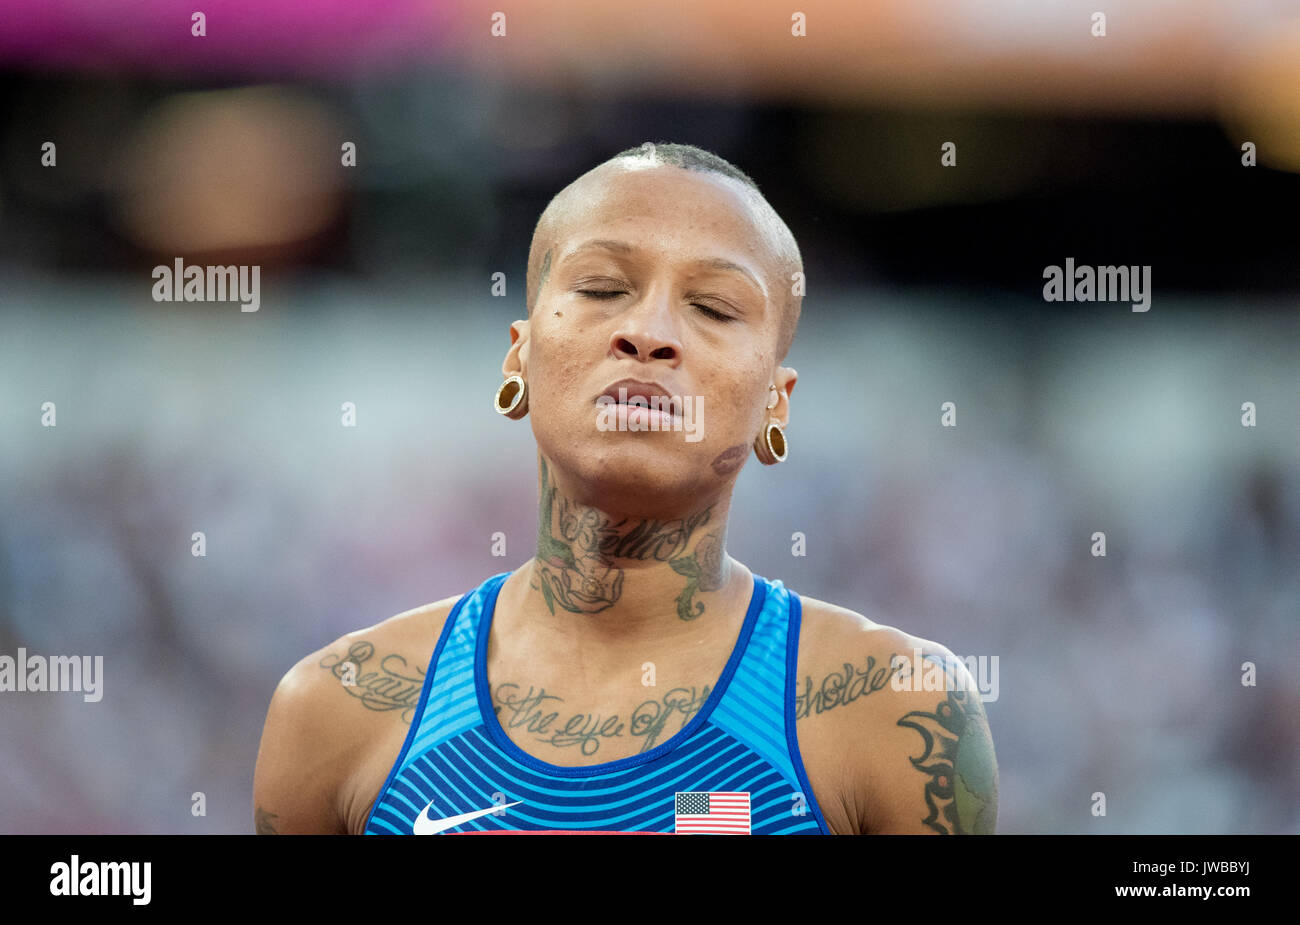 INIKA MCPHERSON of USA during the High Jump Qualifications at the IAAF World Athletics Championships 2017 - Day 7 at the Olympic Park, London, England - Stock Image